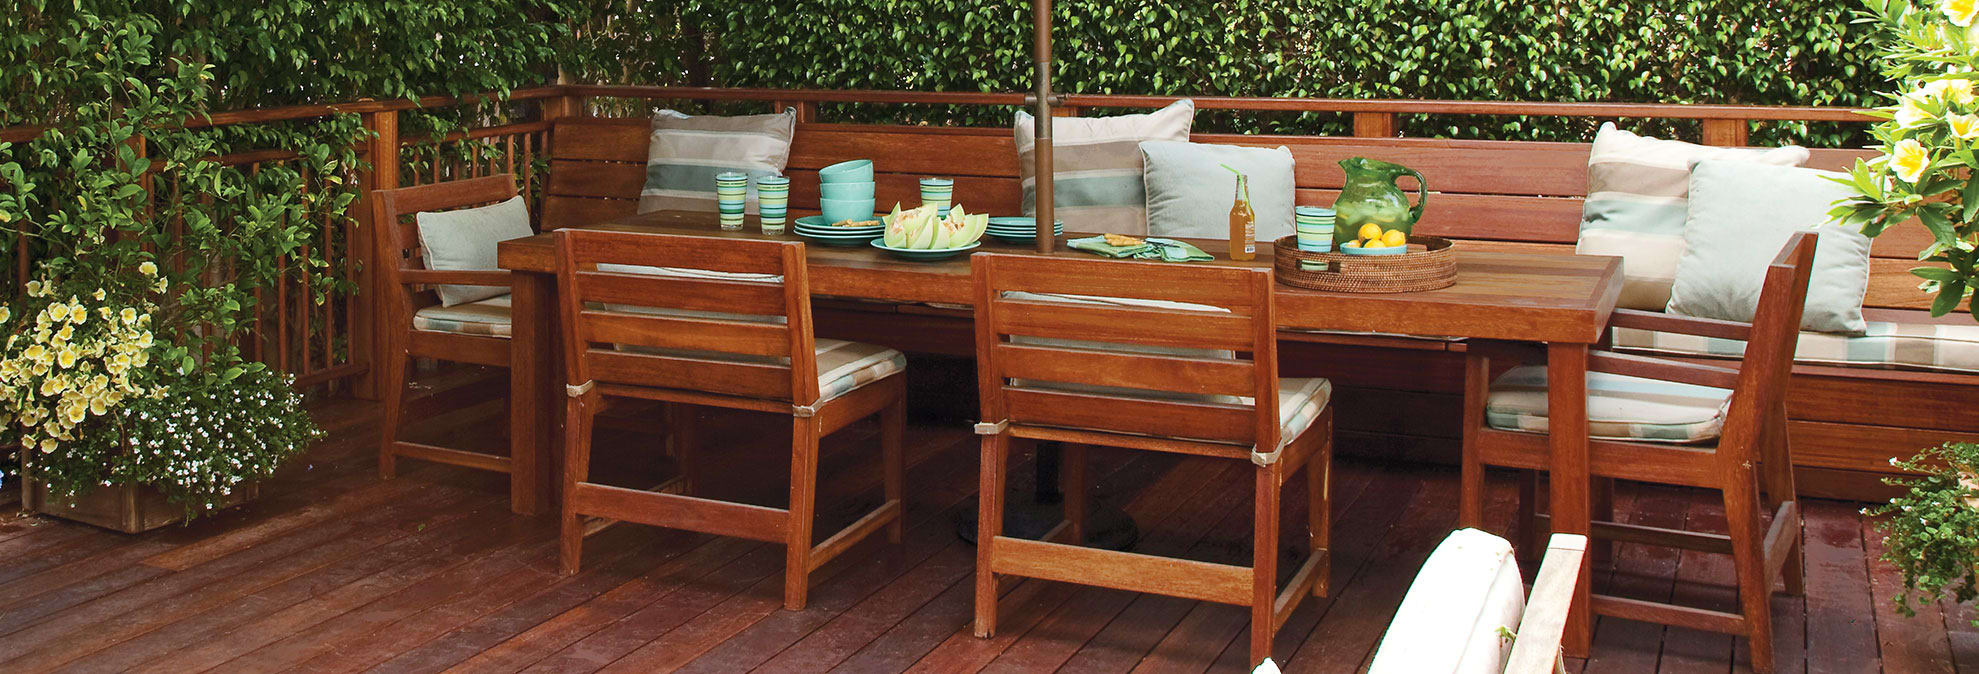 5 Expert Tips for Staining a Deck